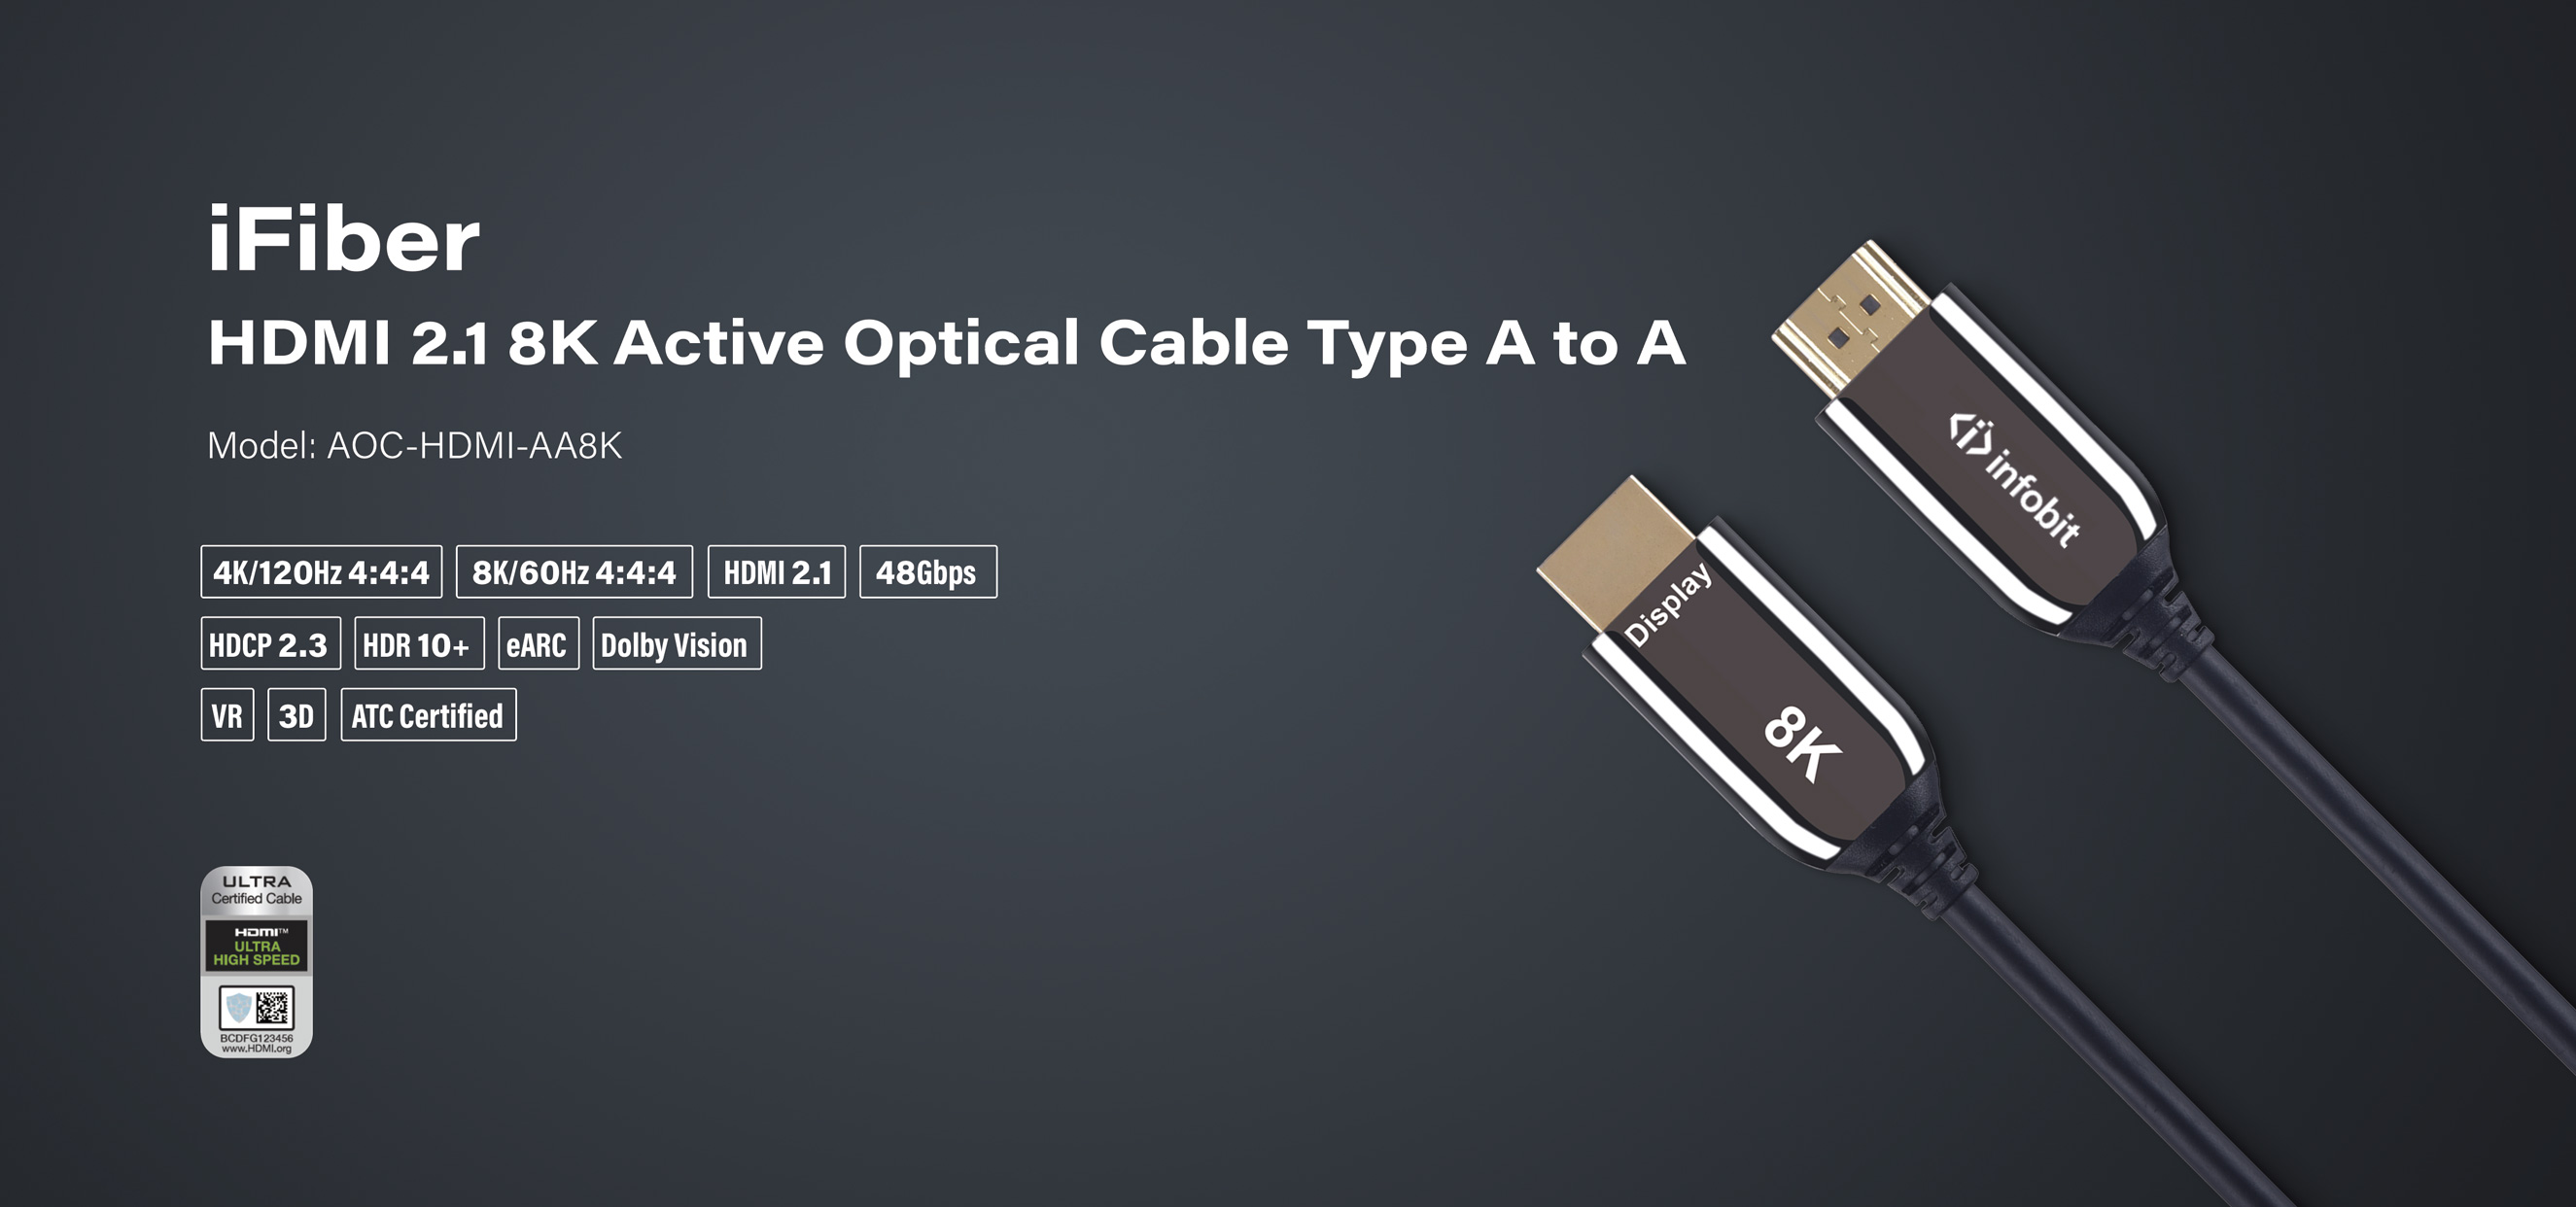 iFiber HDMI 2.1 8K Active Optical Cable 48Gbps